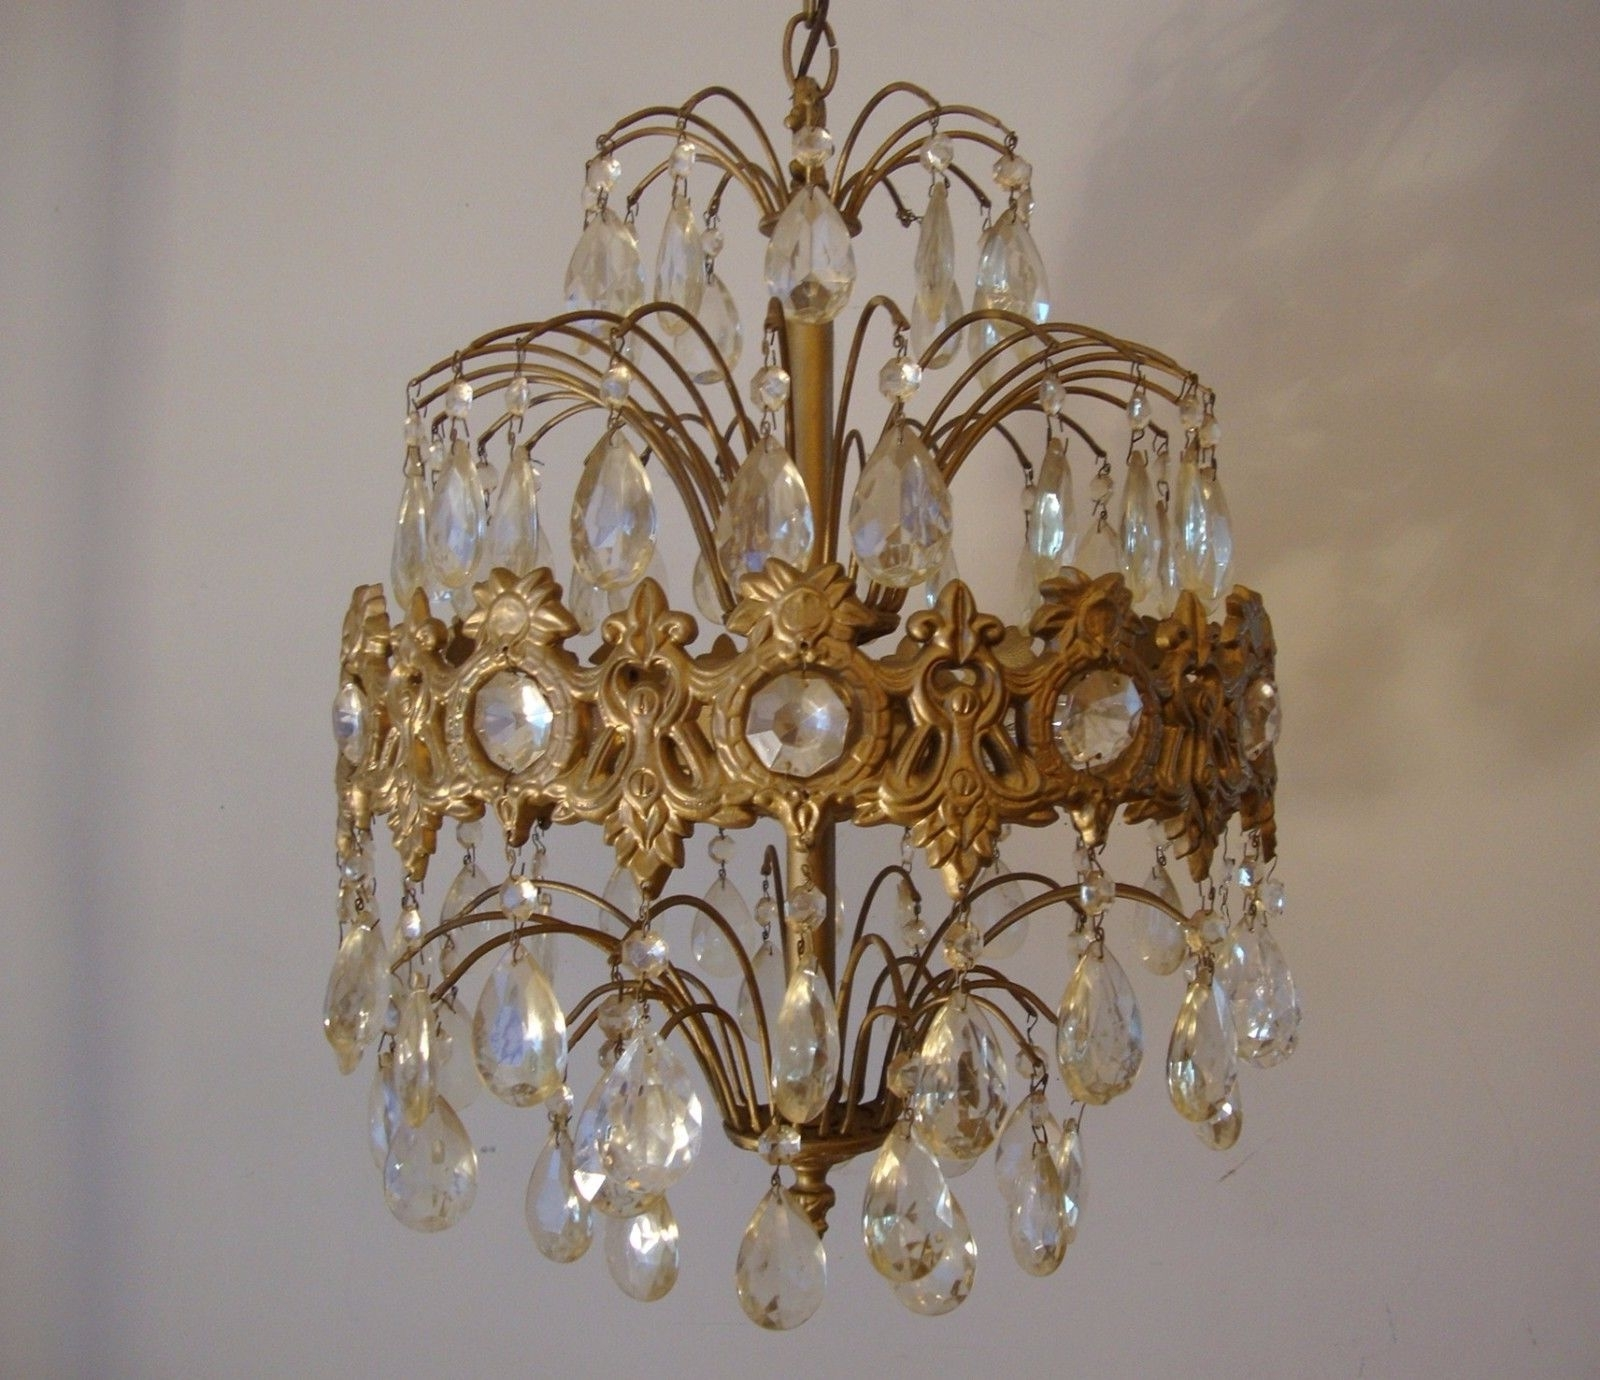 Vintage Crystal Prism Waterfall Chandelier – 6 Tier 6 Lights In Widely Used Antique Looking Chandeliers (View 19 of 20)